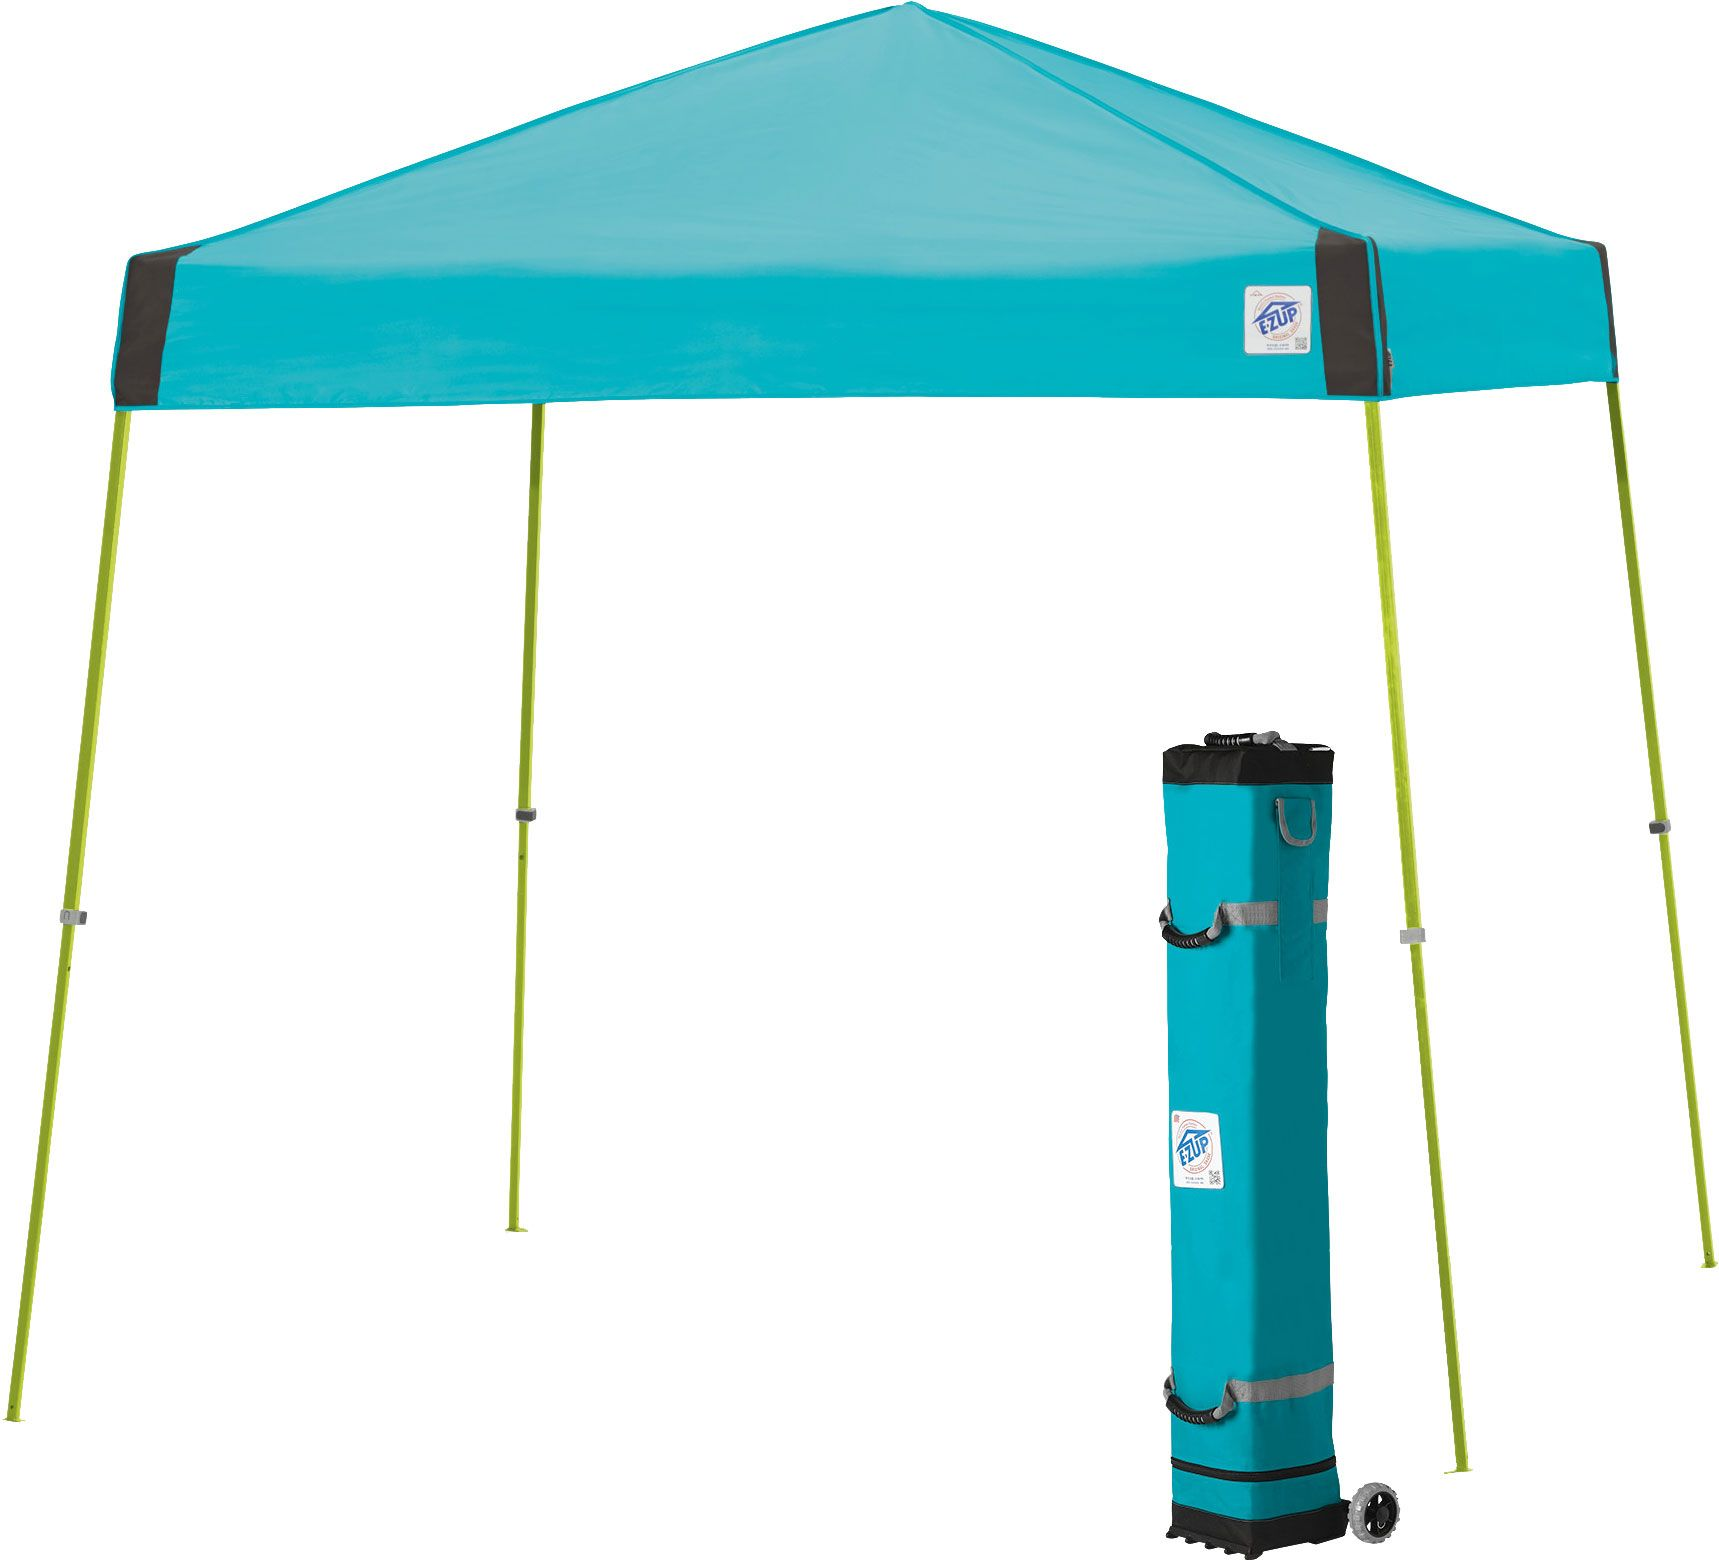 1  sc 1 st  DICKu0027S Sporting Goods : 12 by 12 canopy tent - afamca.org